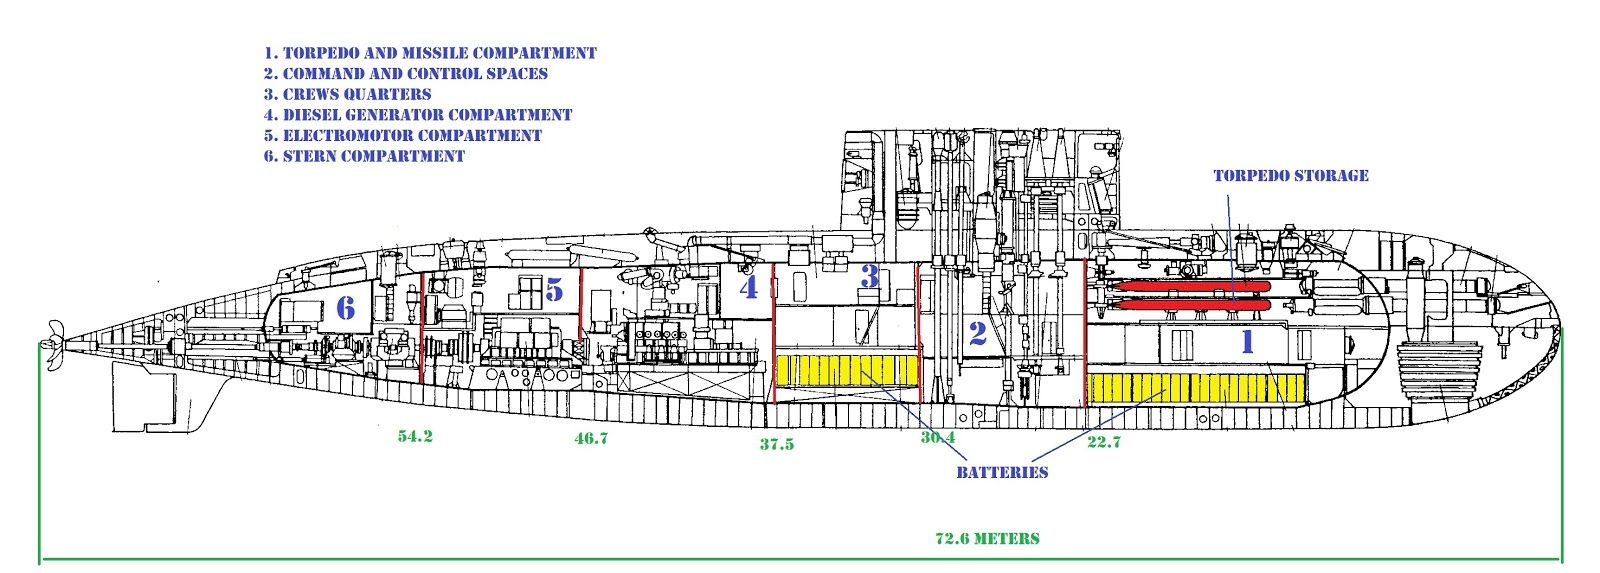 small resolution of image result for kilo class submarine plans